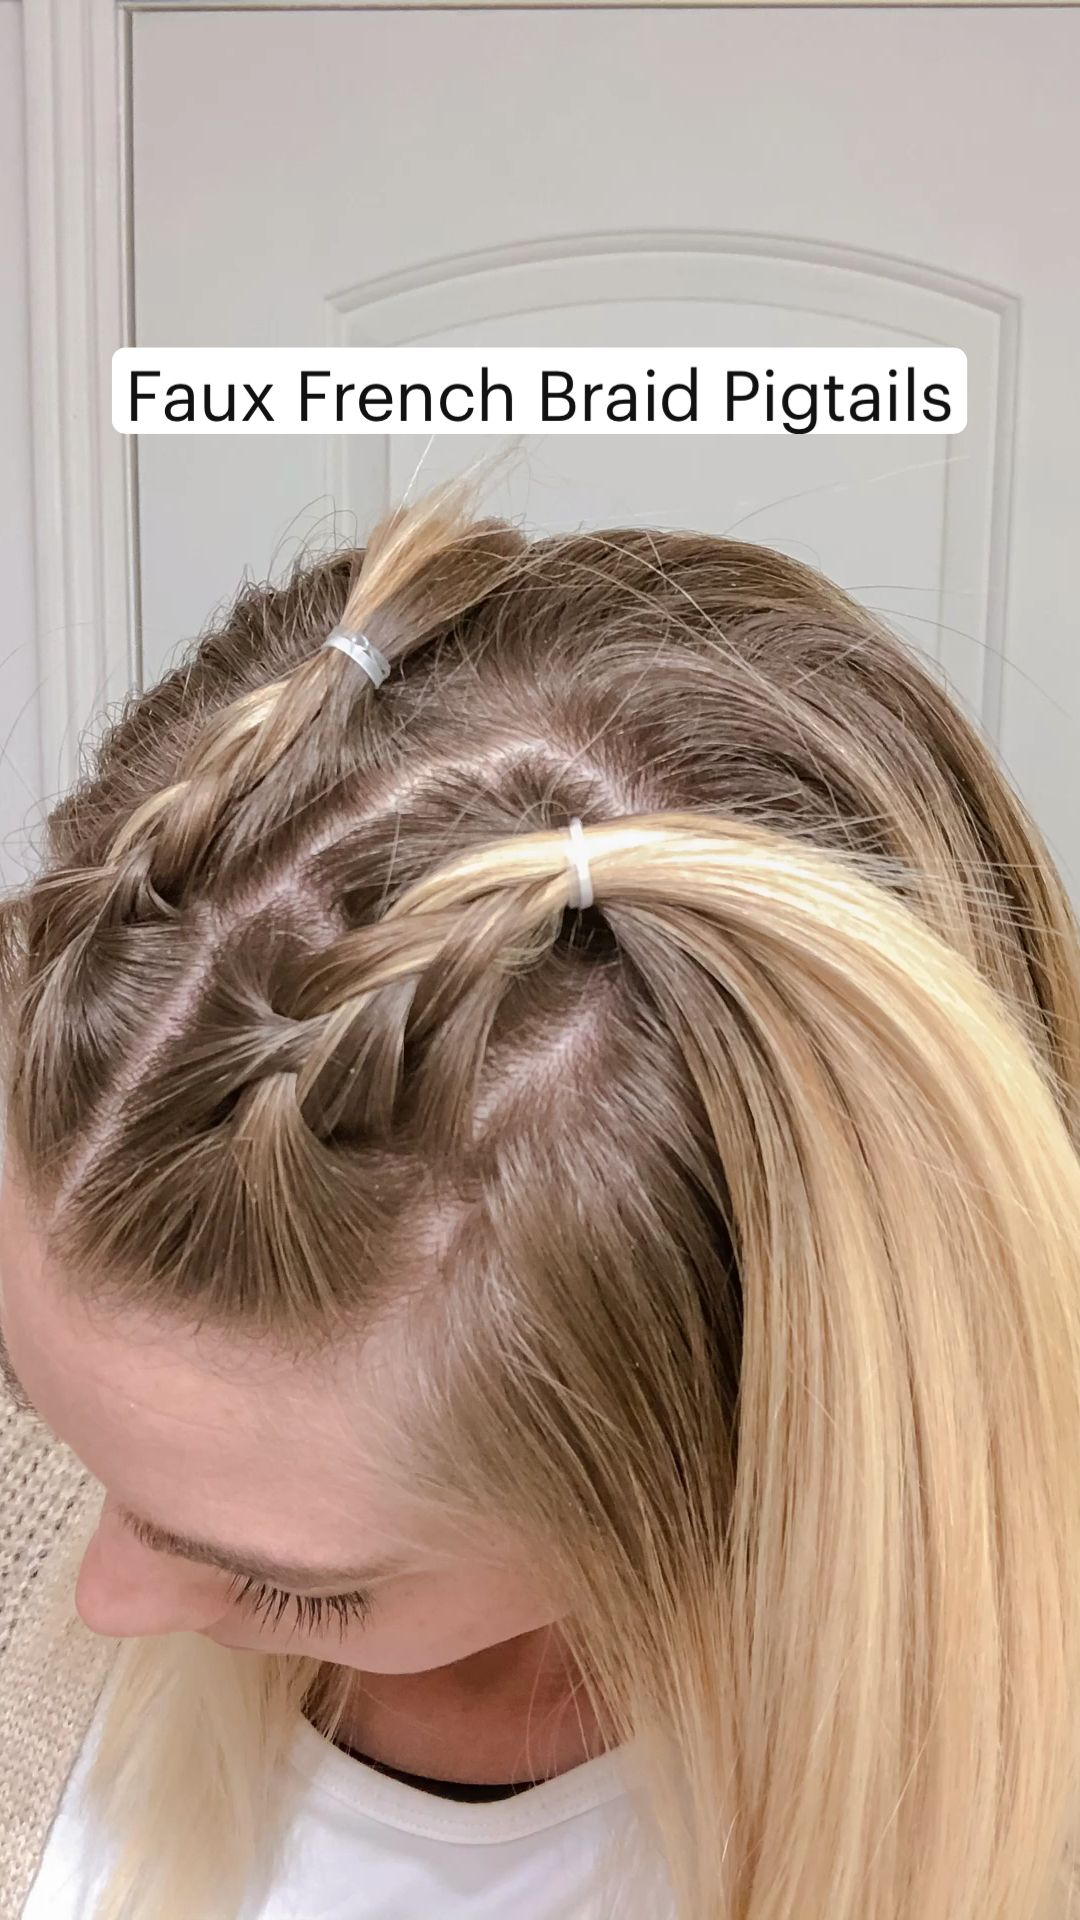 Photo of Faux French Braid Pigtails